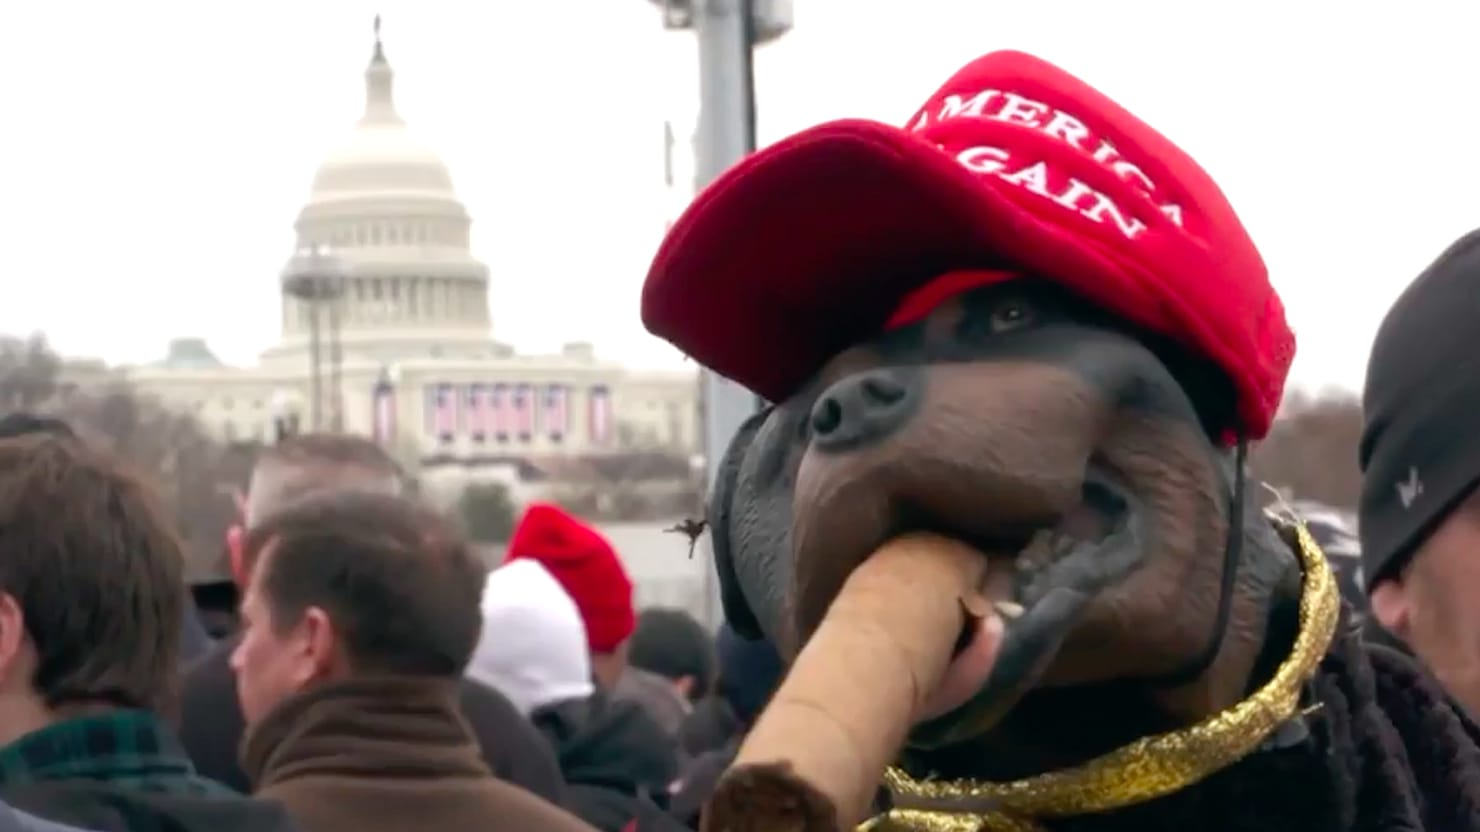 triumph the insult comic dog poops all over trump's inauguration